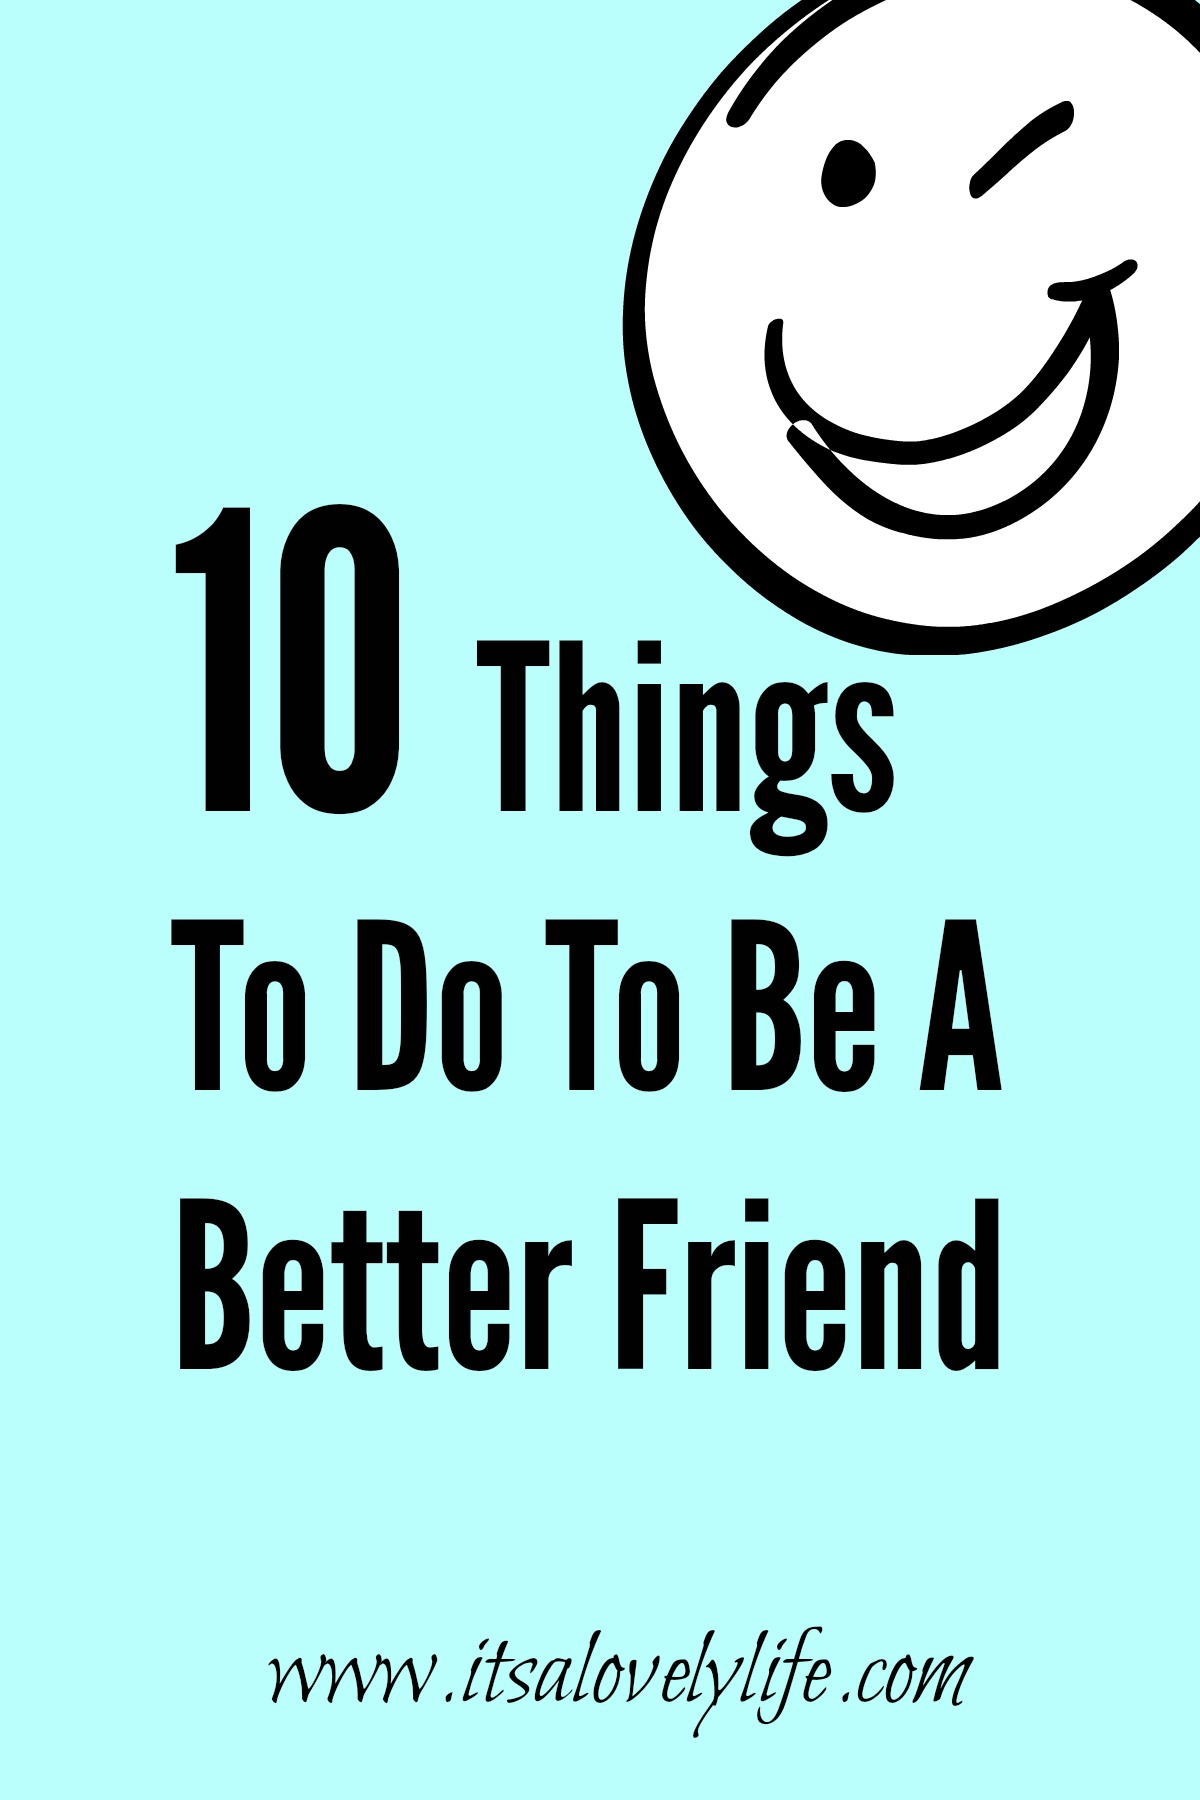 Things To Do To Be A Better Friend